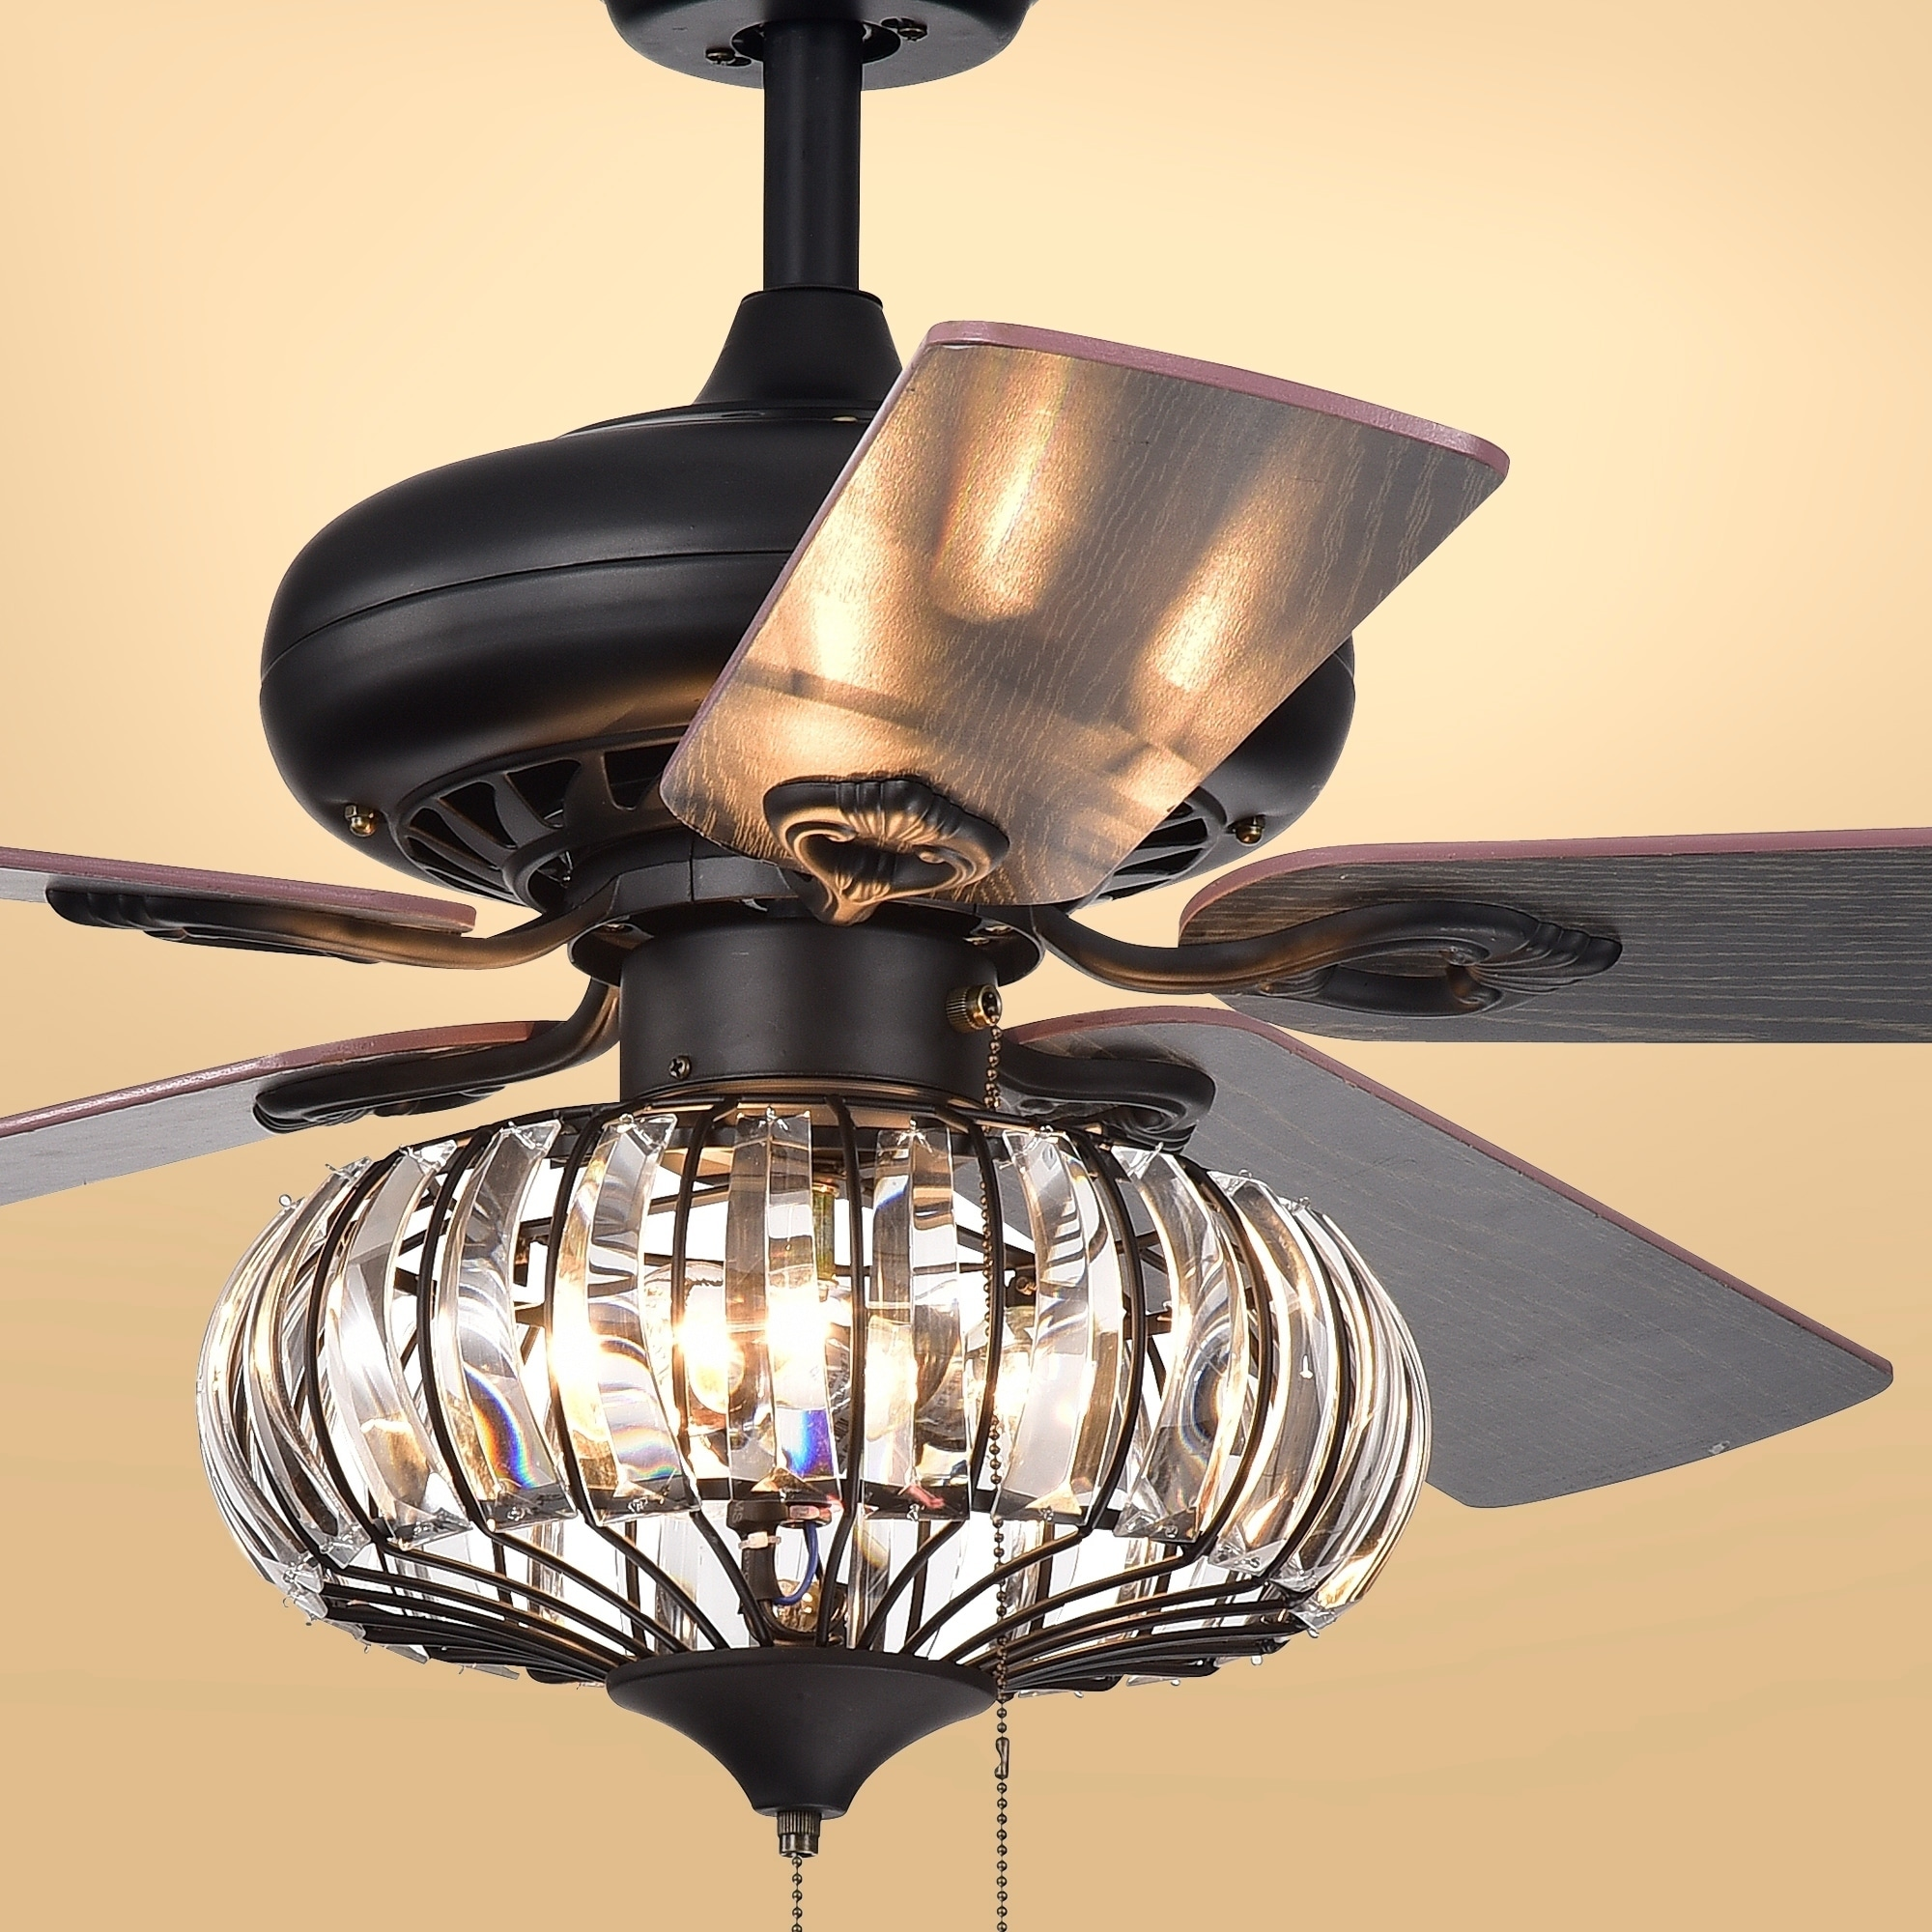 Ceiling Fans With Good Lighting Chrysaor 3 Light Crystal 5 Blade 52 Inch Brown Ceiling Fan Optional Remote